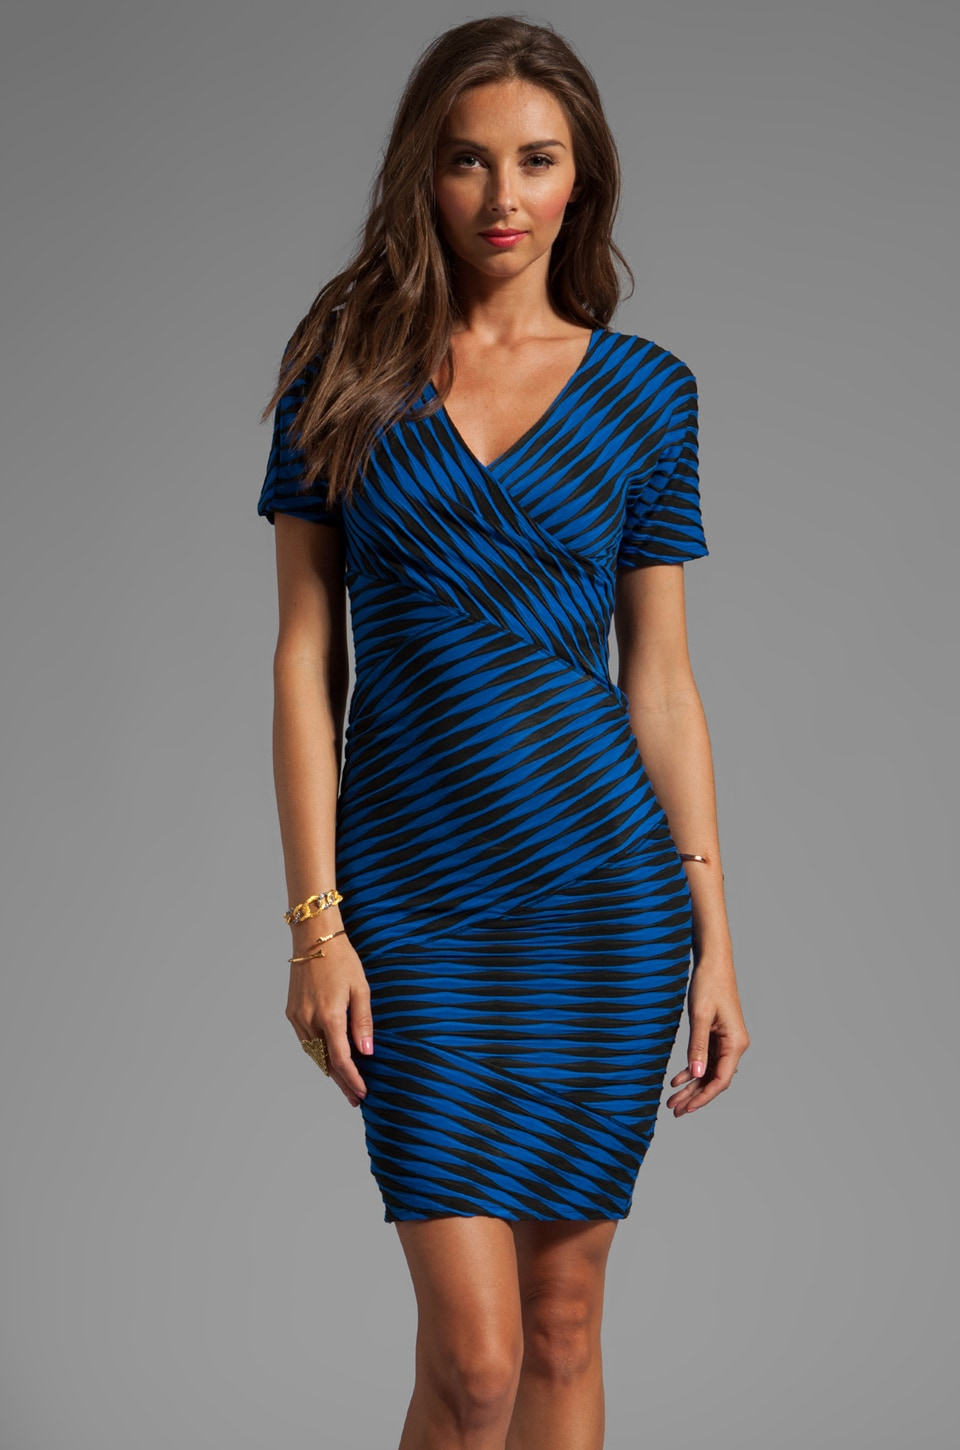 Plenty by Tracy Reese Novelty 2-Tone Twist Jersey Directional Dress in Imperial Blue/Black